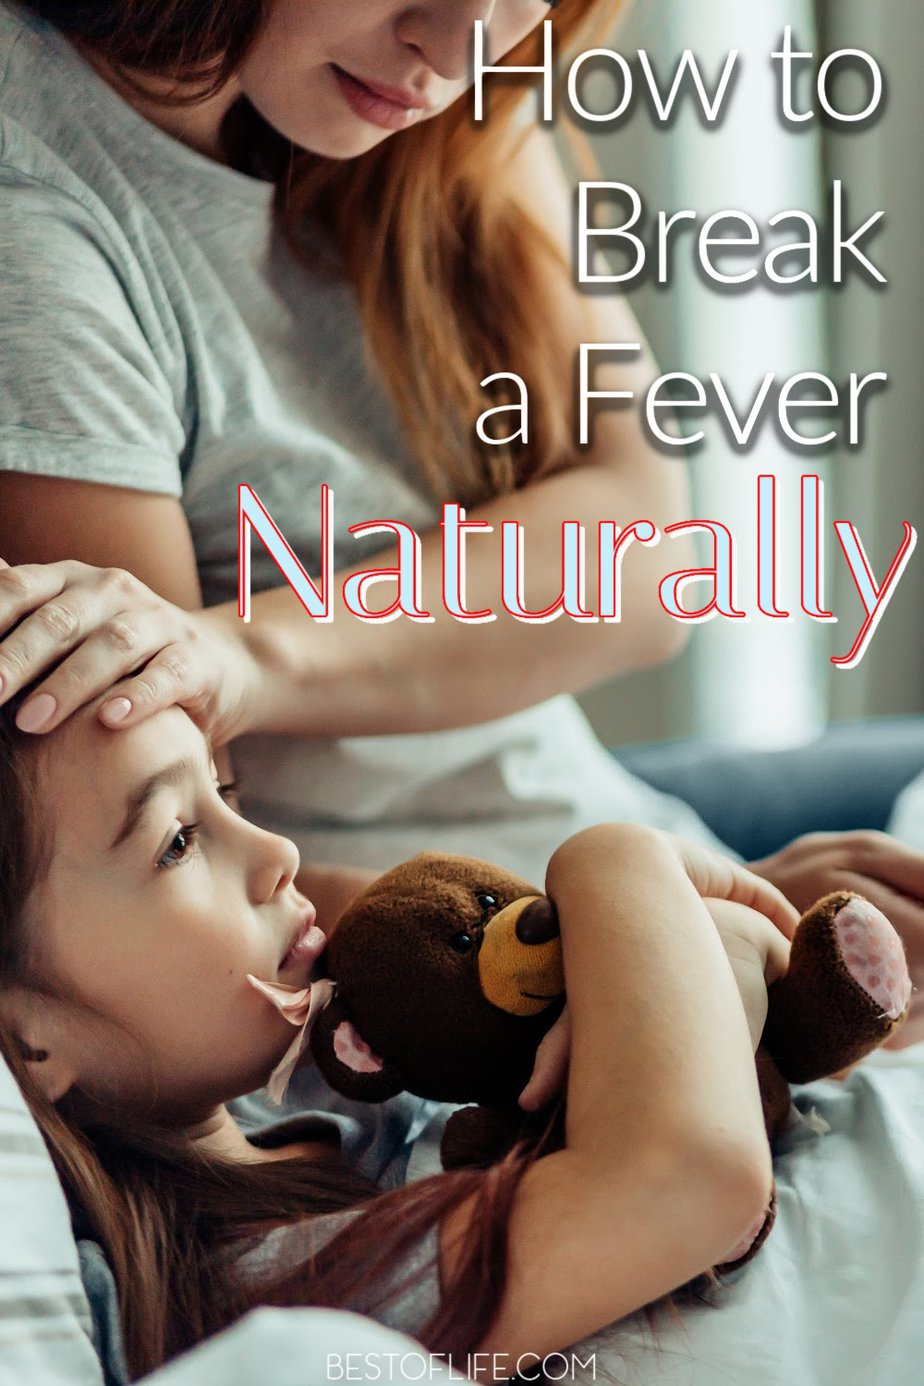 When you know how to break a fever naturally, you can help bring your fever down faster at home and possibly avoid taking medicine altogether. How to Break a Fever Kids | Tips for Sick Children | Tips for Breaking a Fever | Cold Remedies Fast | Home Remedies for Fever #sick #tips via @thebestoflife